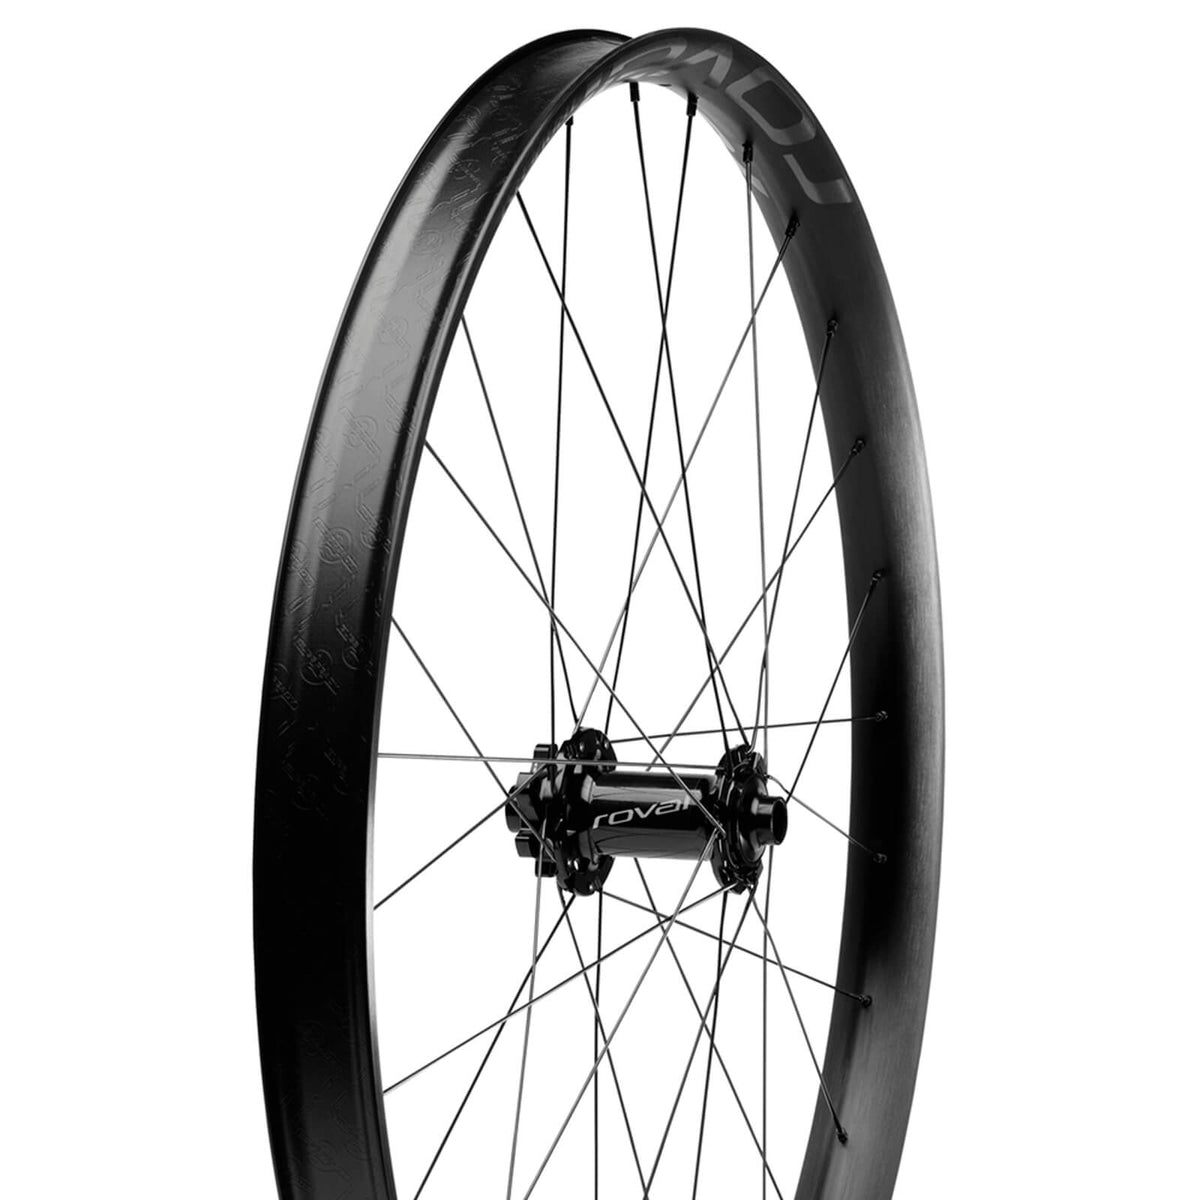 Traverse 38 front wheel